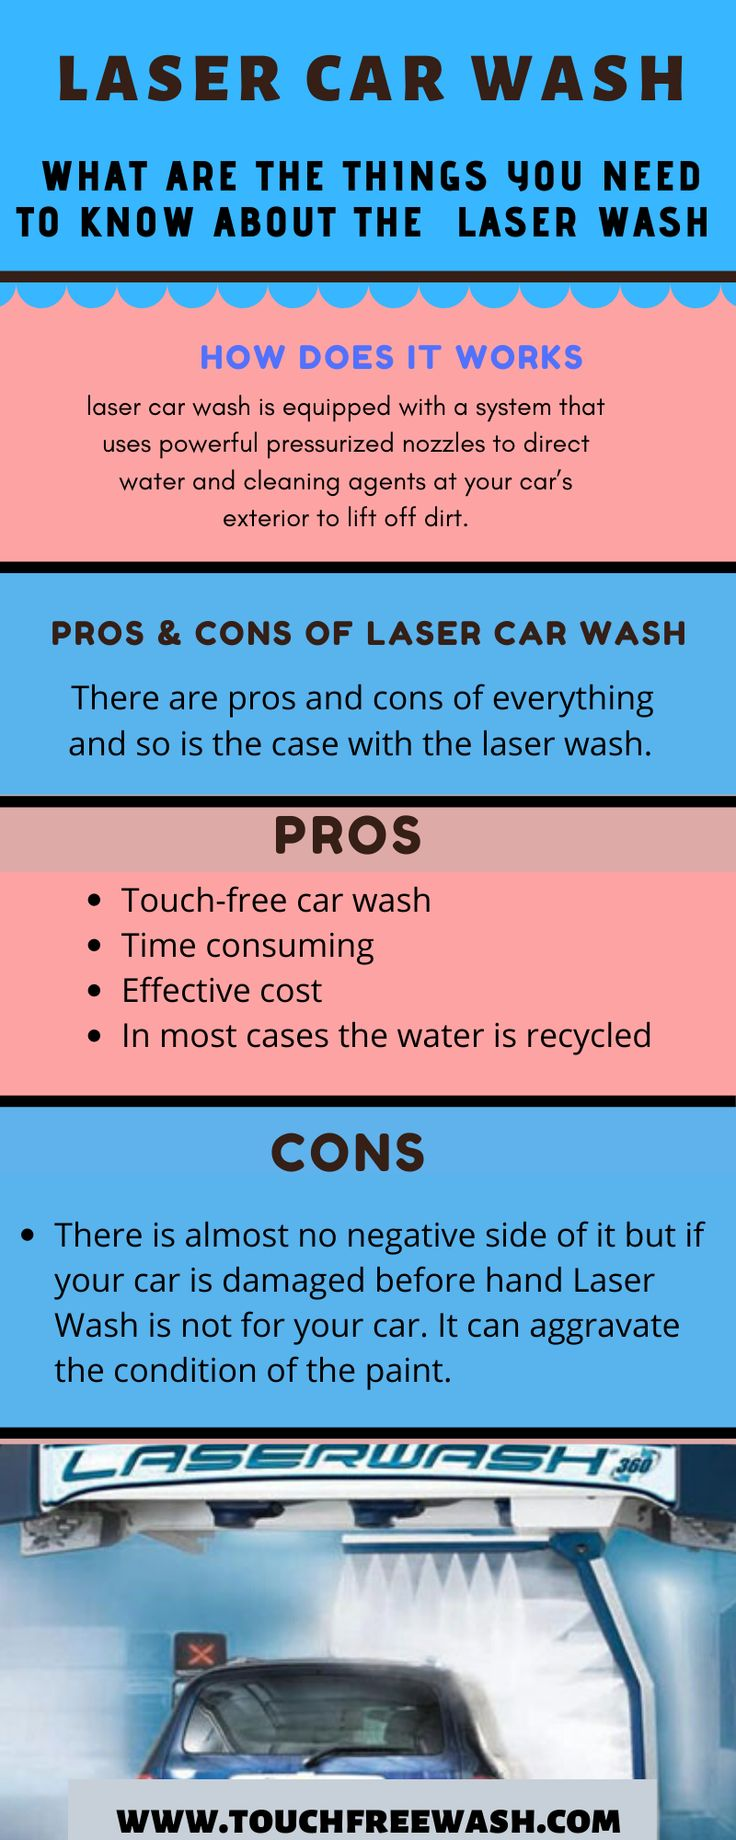 Things You Need To Know About The Laser Car Wash. Car